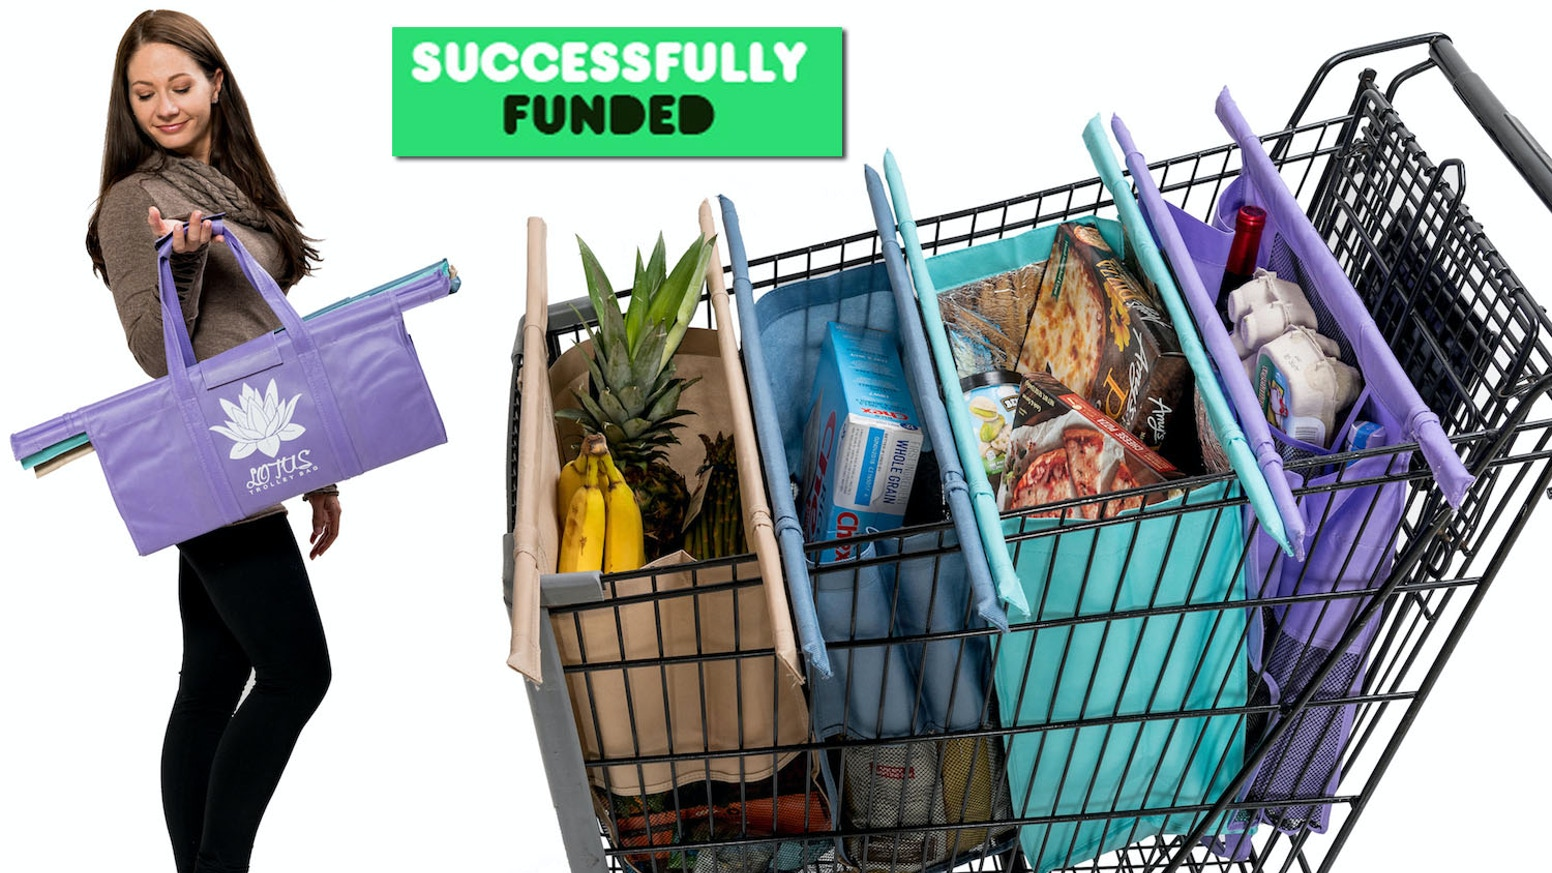 Smart. Organized. Impactful. The stylish way for a plastic FREE grocery shopping experience.